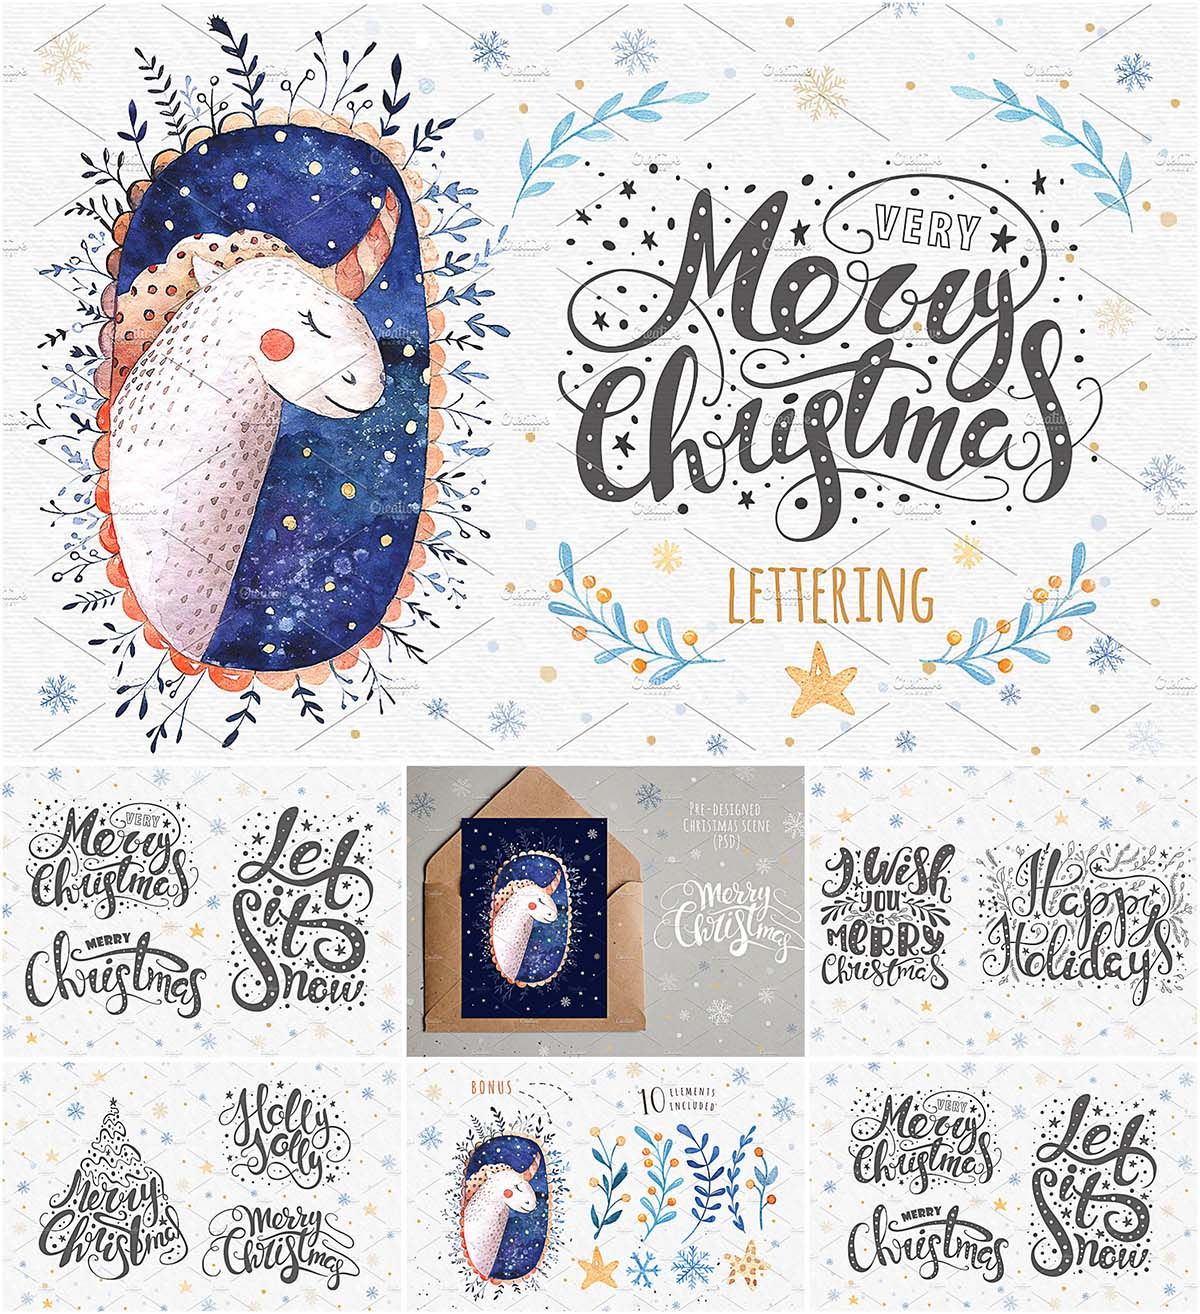 Christmas lettering and elements set | Free download